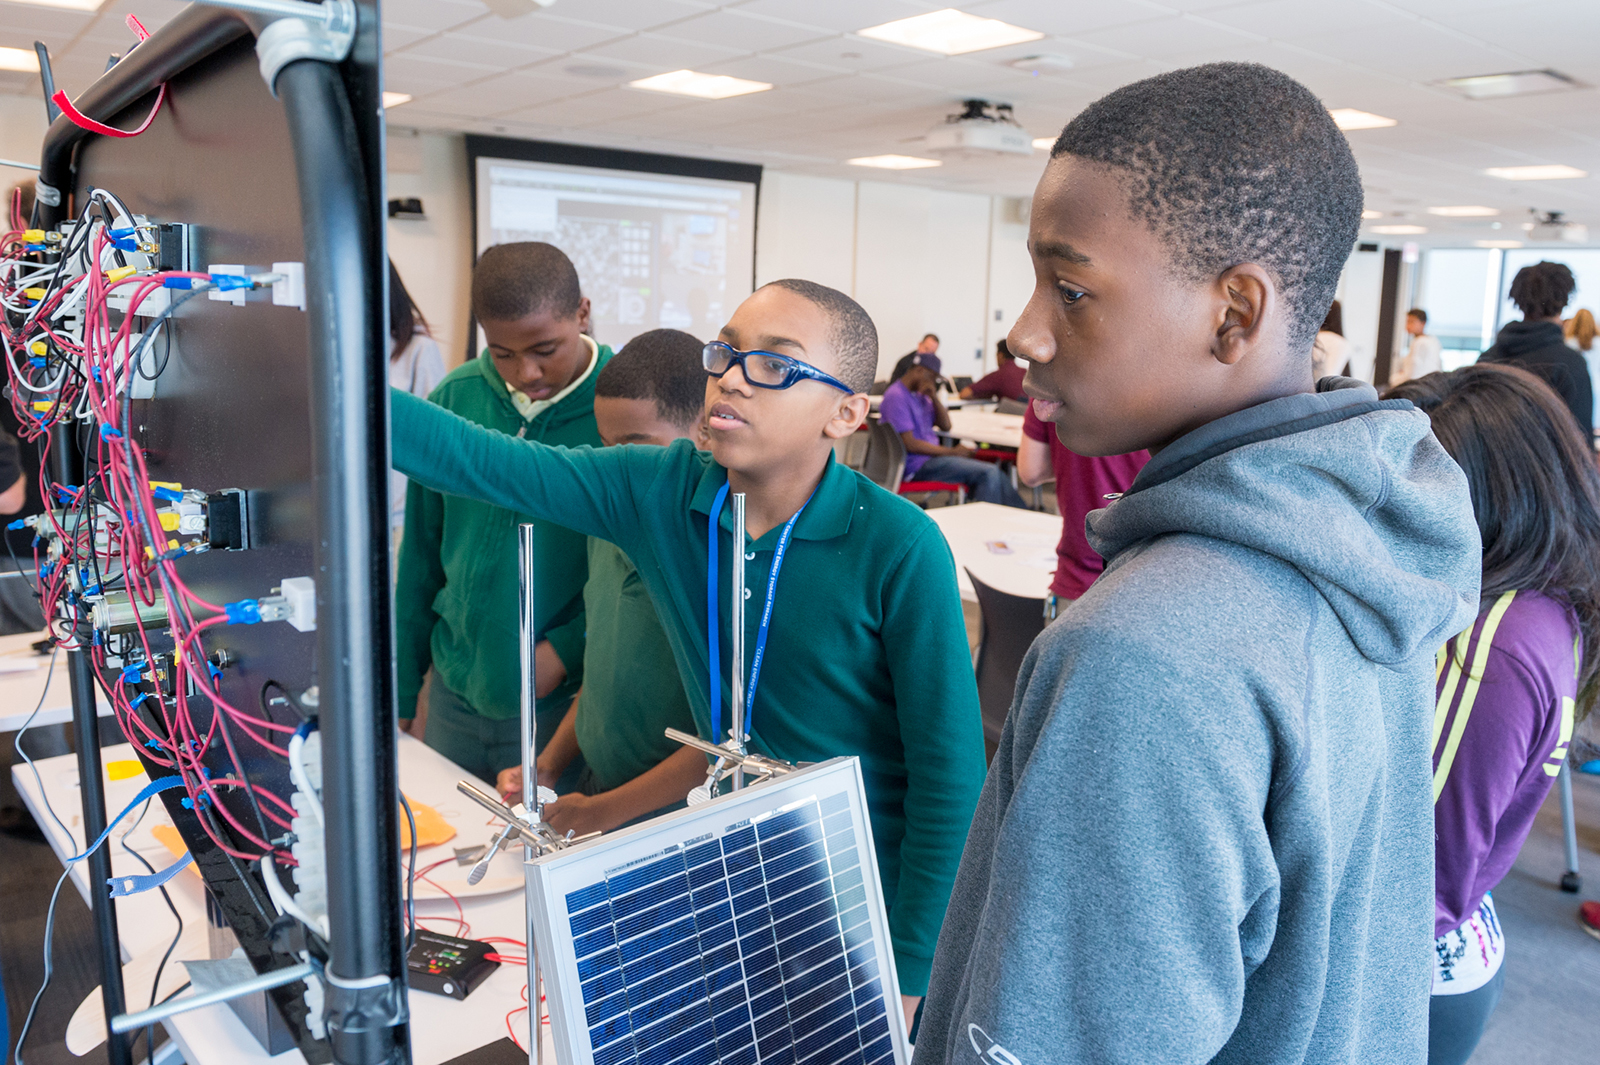 """At """"Charging up the Classroom,"""" students check how much power they have produced after using wind turbines and solar panels to generate electricity. All photos by Mark Lopez/Argonne National Laboratory."""